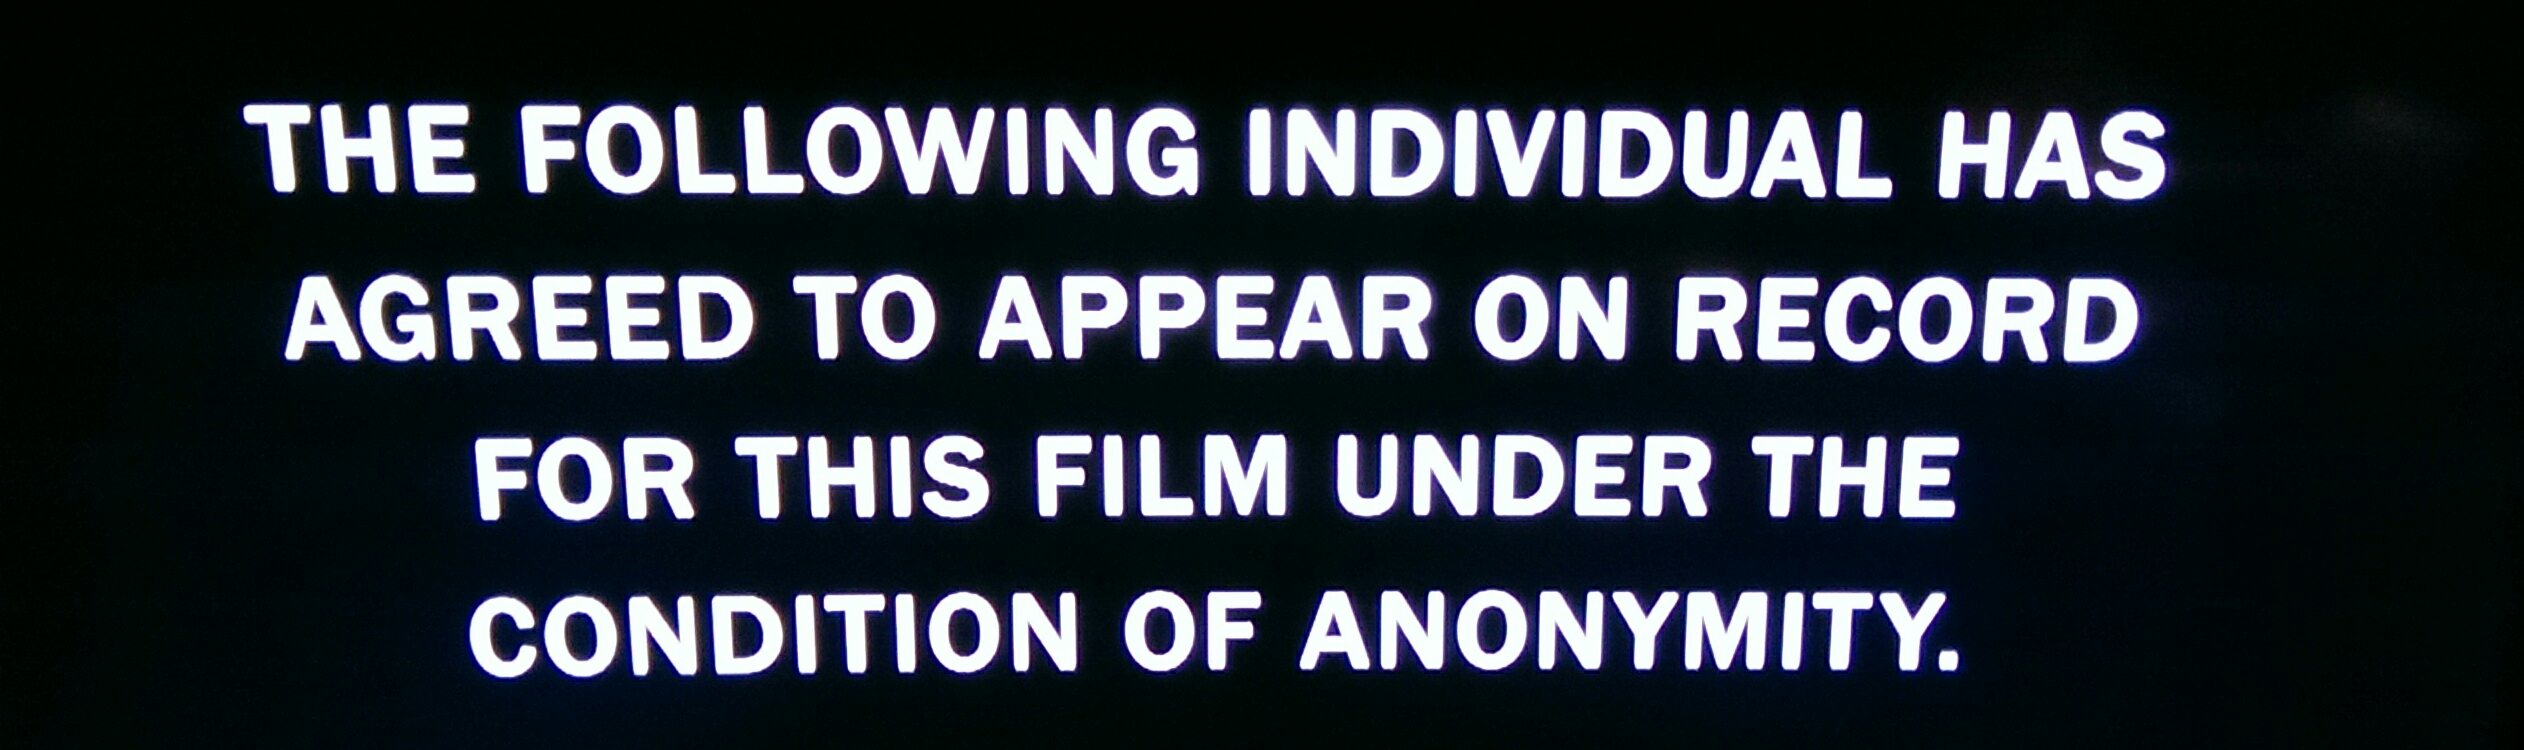 """Image with the text """"The following individual has agreed to appear on record for this film under the condition of anonymity"""""""